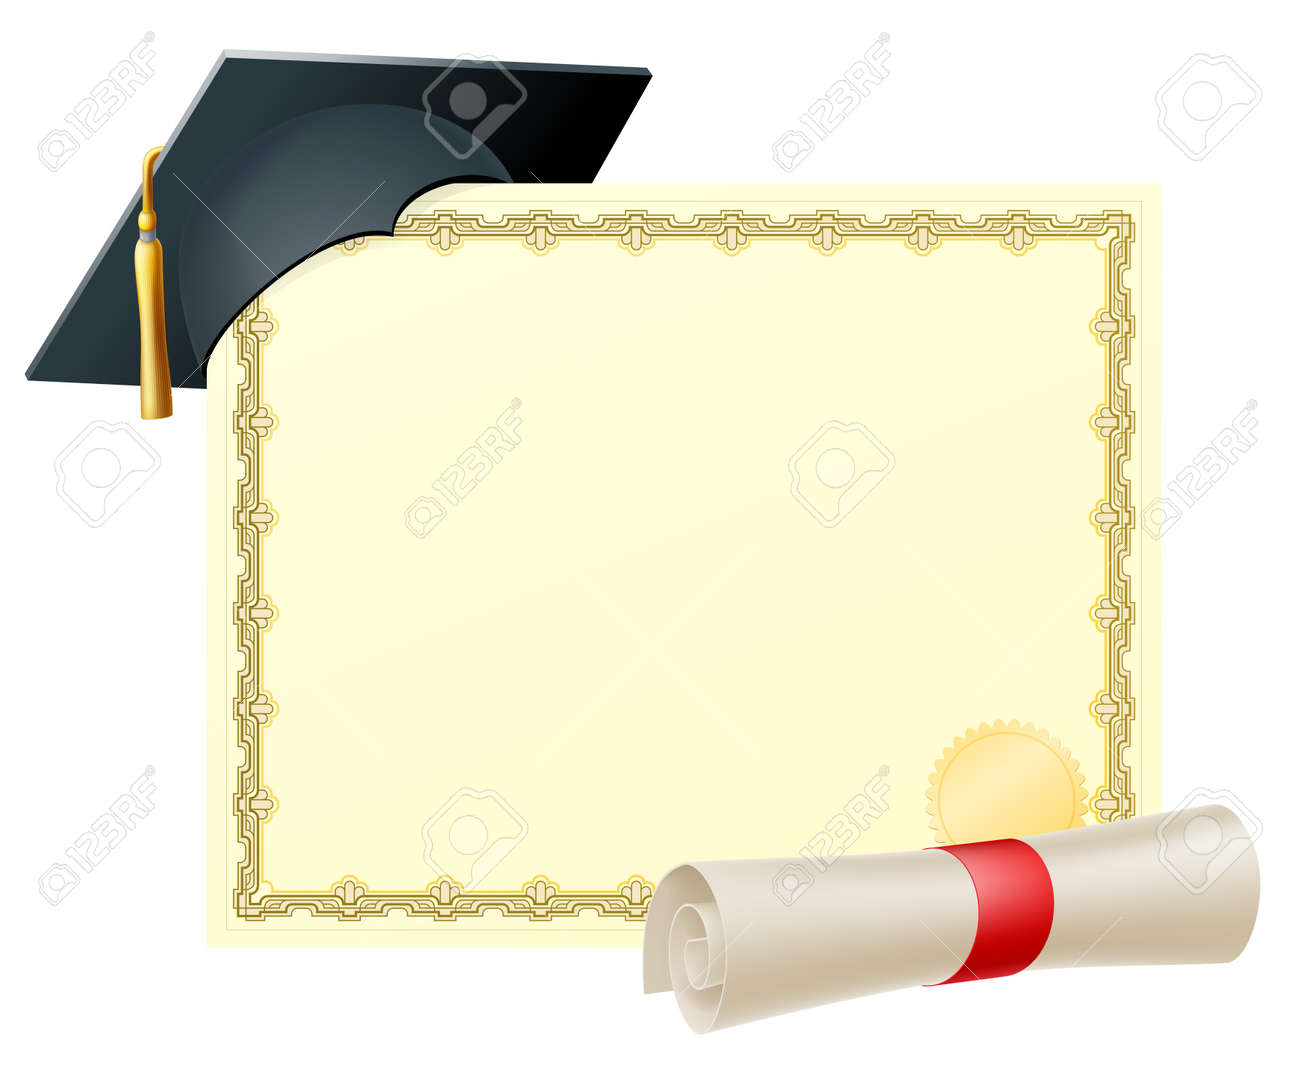 Degree Stock Photos Royalty Free Degree Images And Pictures